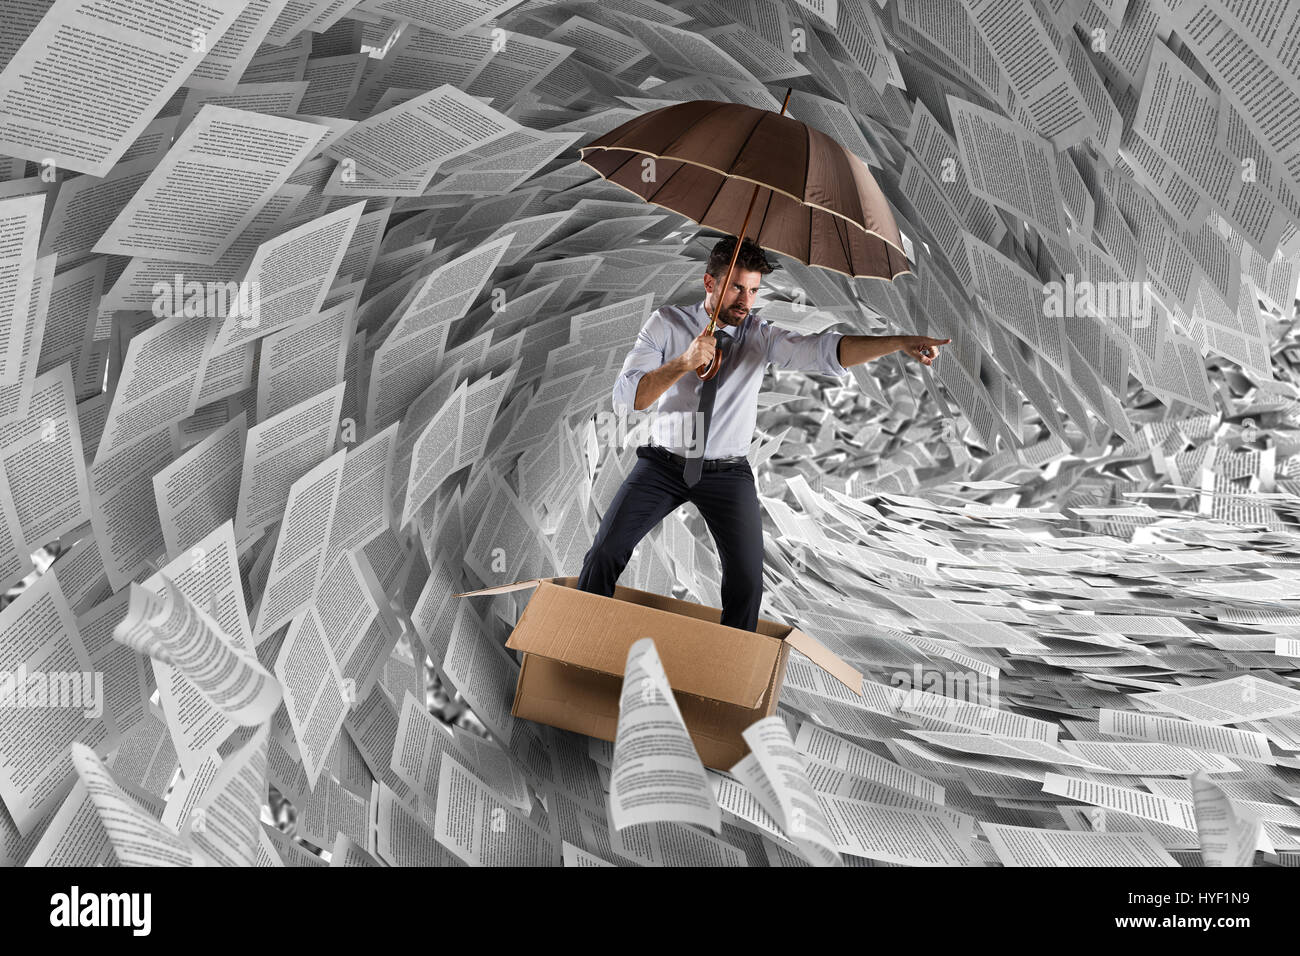 Navigate the storm of bureaucracy - Stock Image